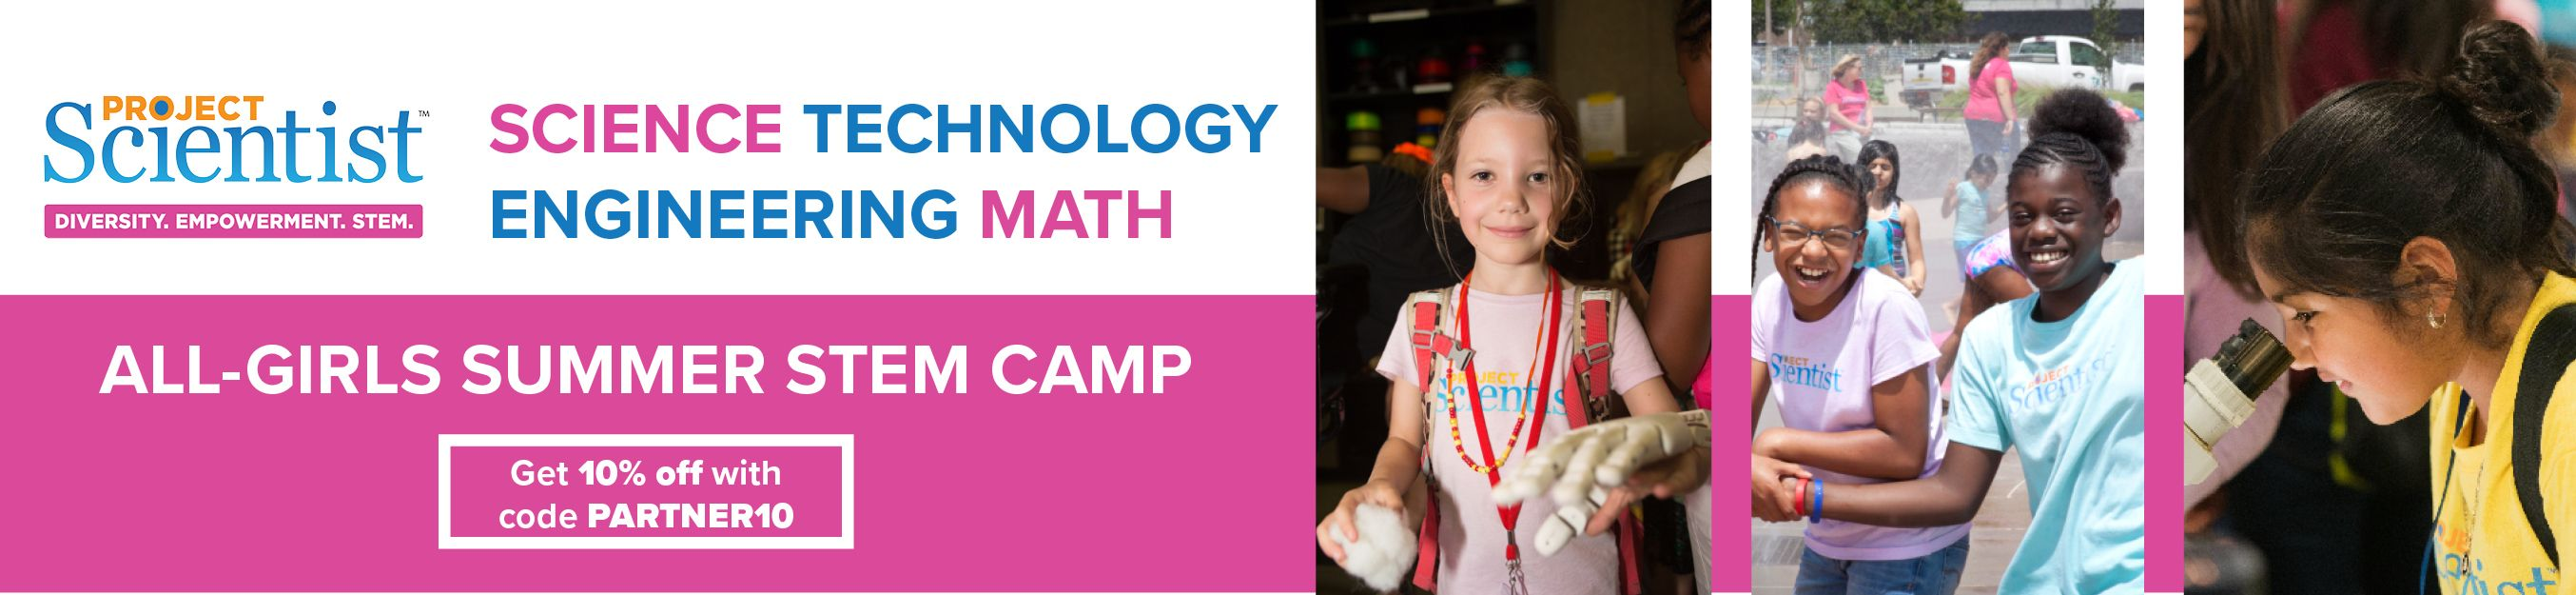 Project Scientist summer camp banner